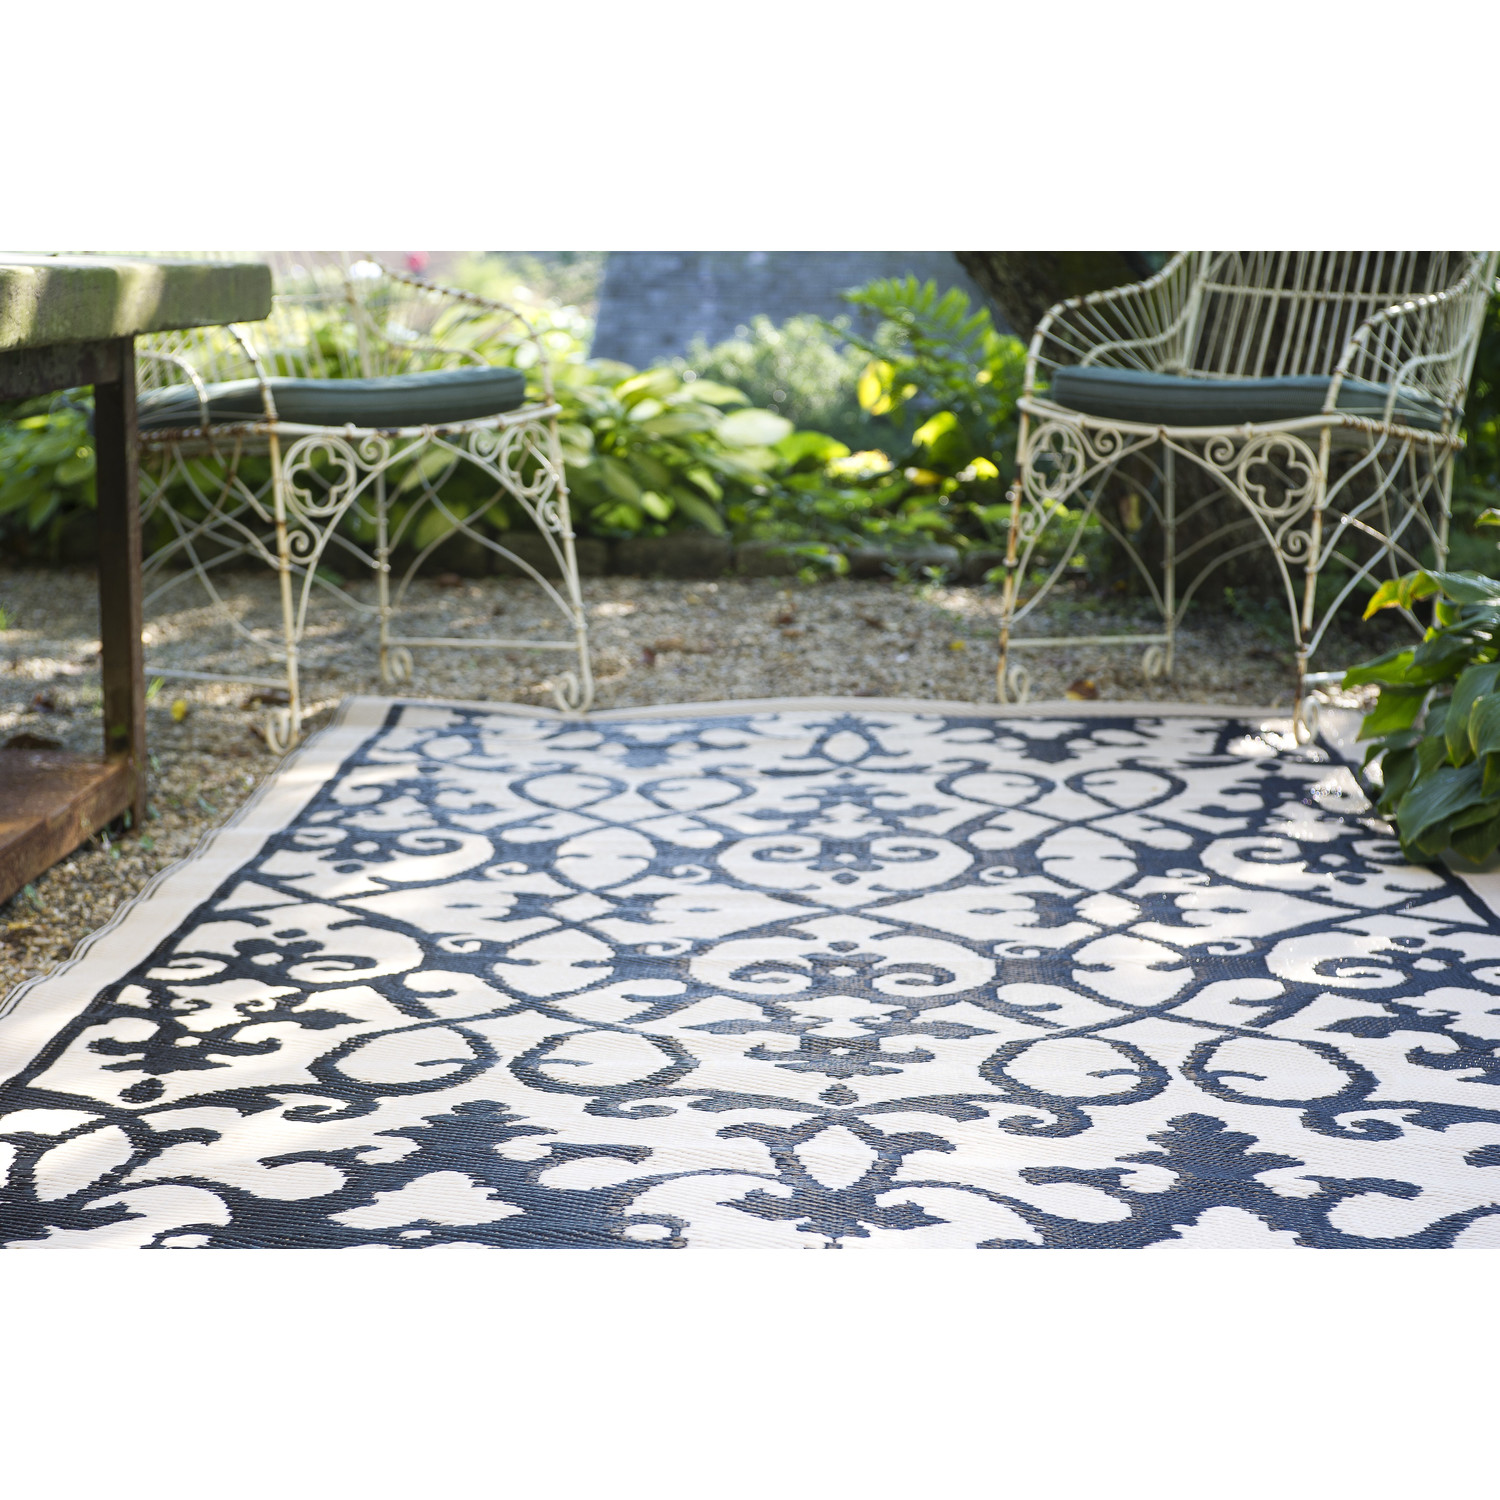 Black indoor outdoor carpet homesfeed - Naturewood furniture for both indoor and outdoor sitting ...